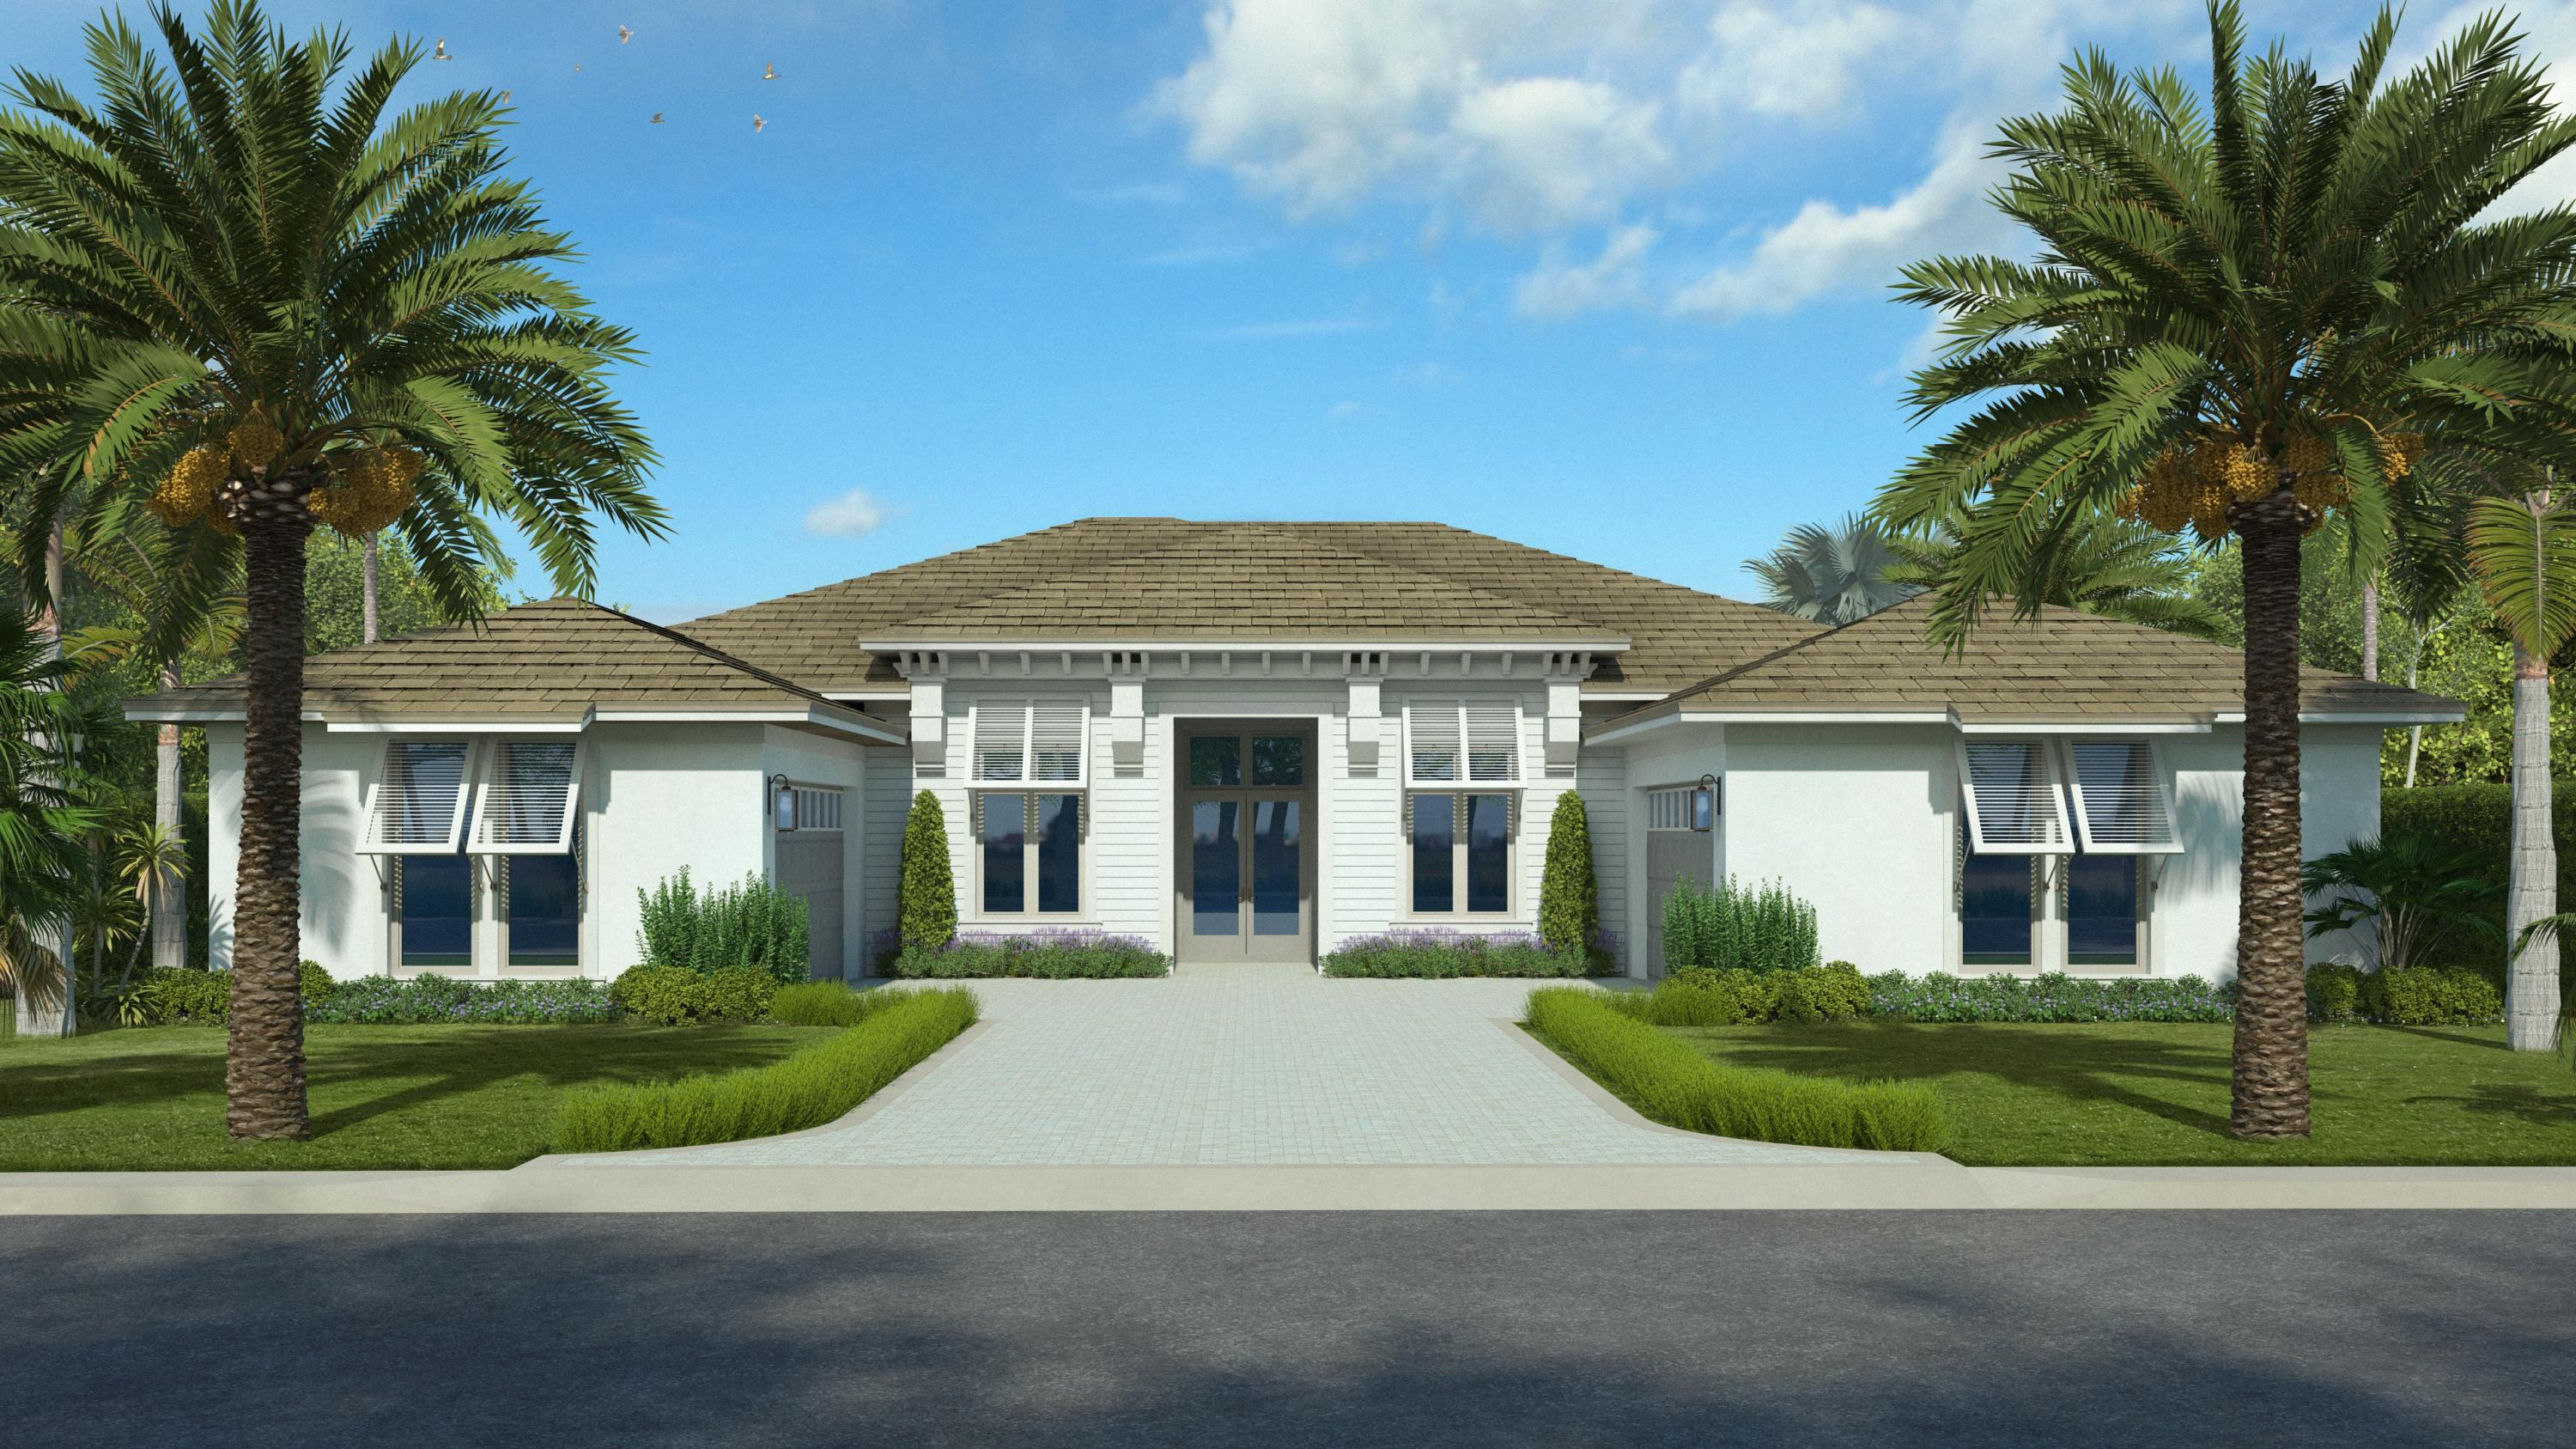 142 Commodore Drive, Jupiter, Florida 33477, 4 Bedrooms Bedrooms, ,4.1 BathroomsBathrooms,A,Single family,Commodore,RX-10457488